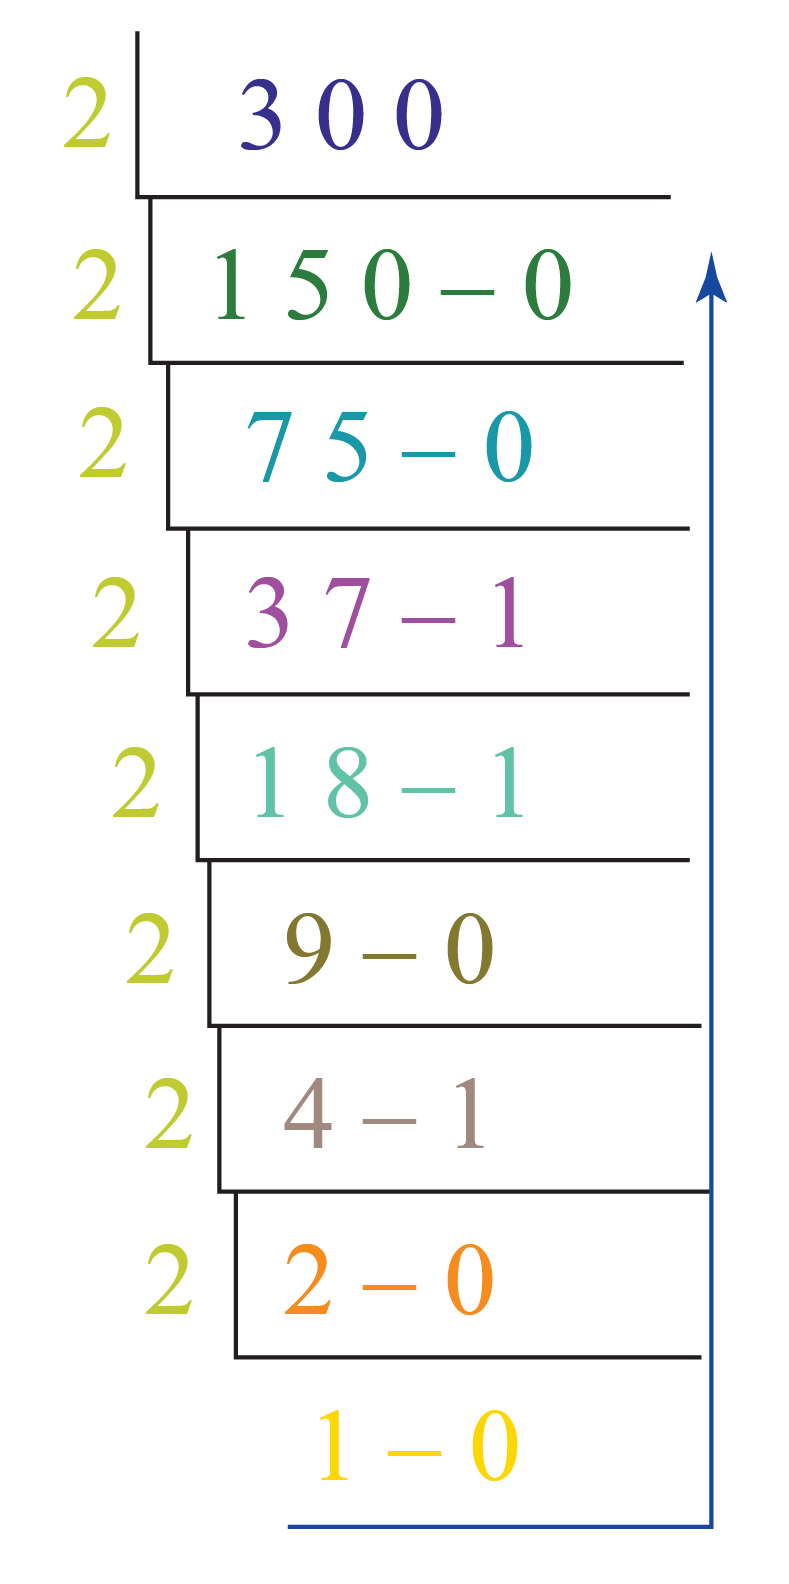 hight resolution of Number System   Definitions   What is Number System - Cuemath